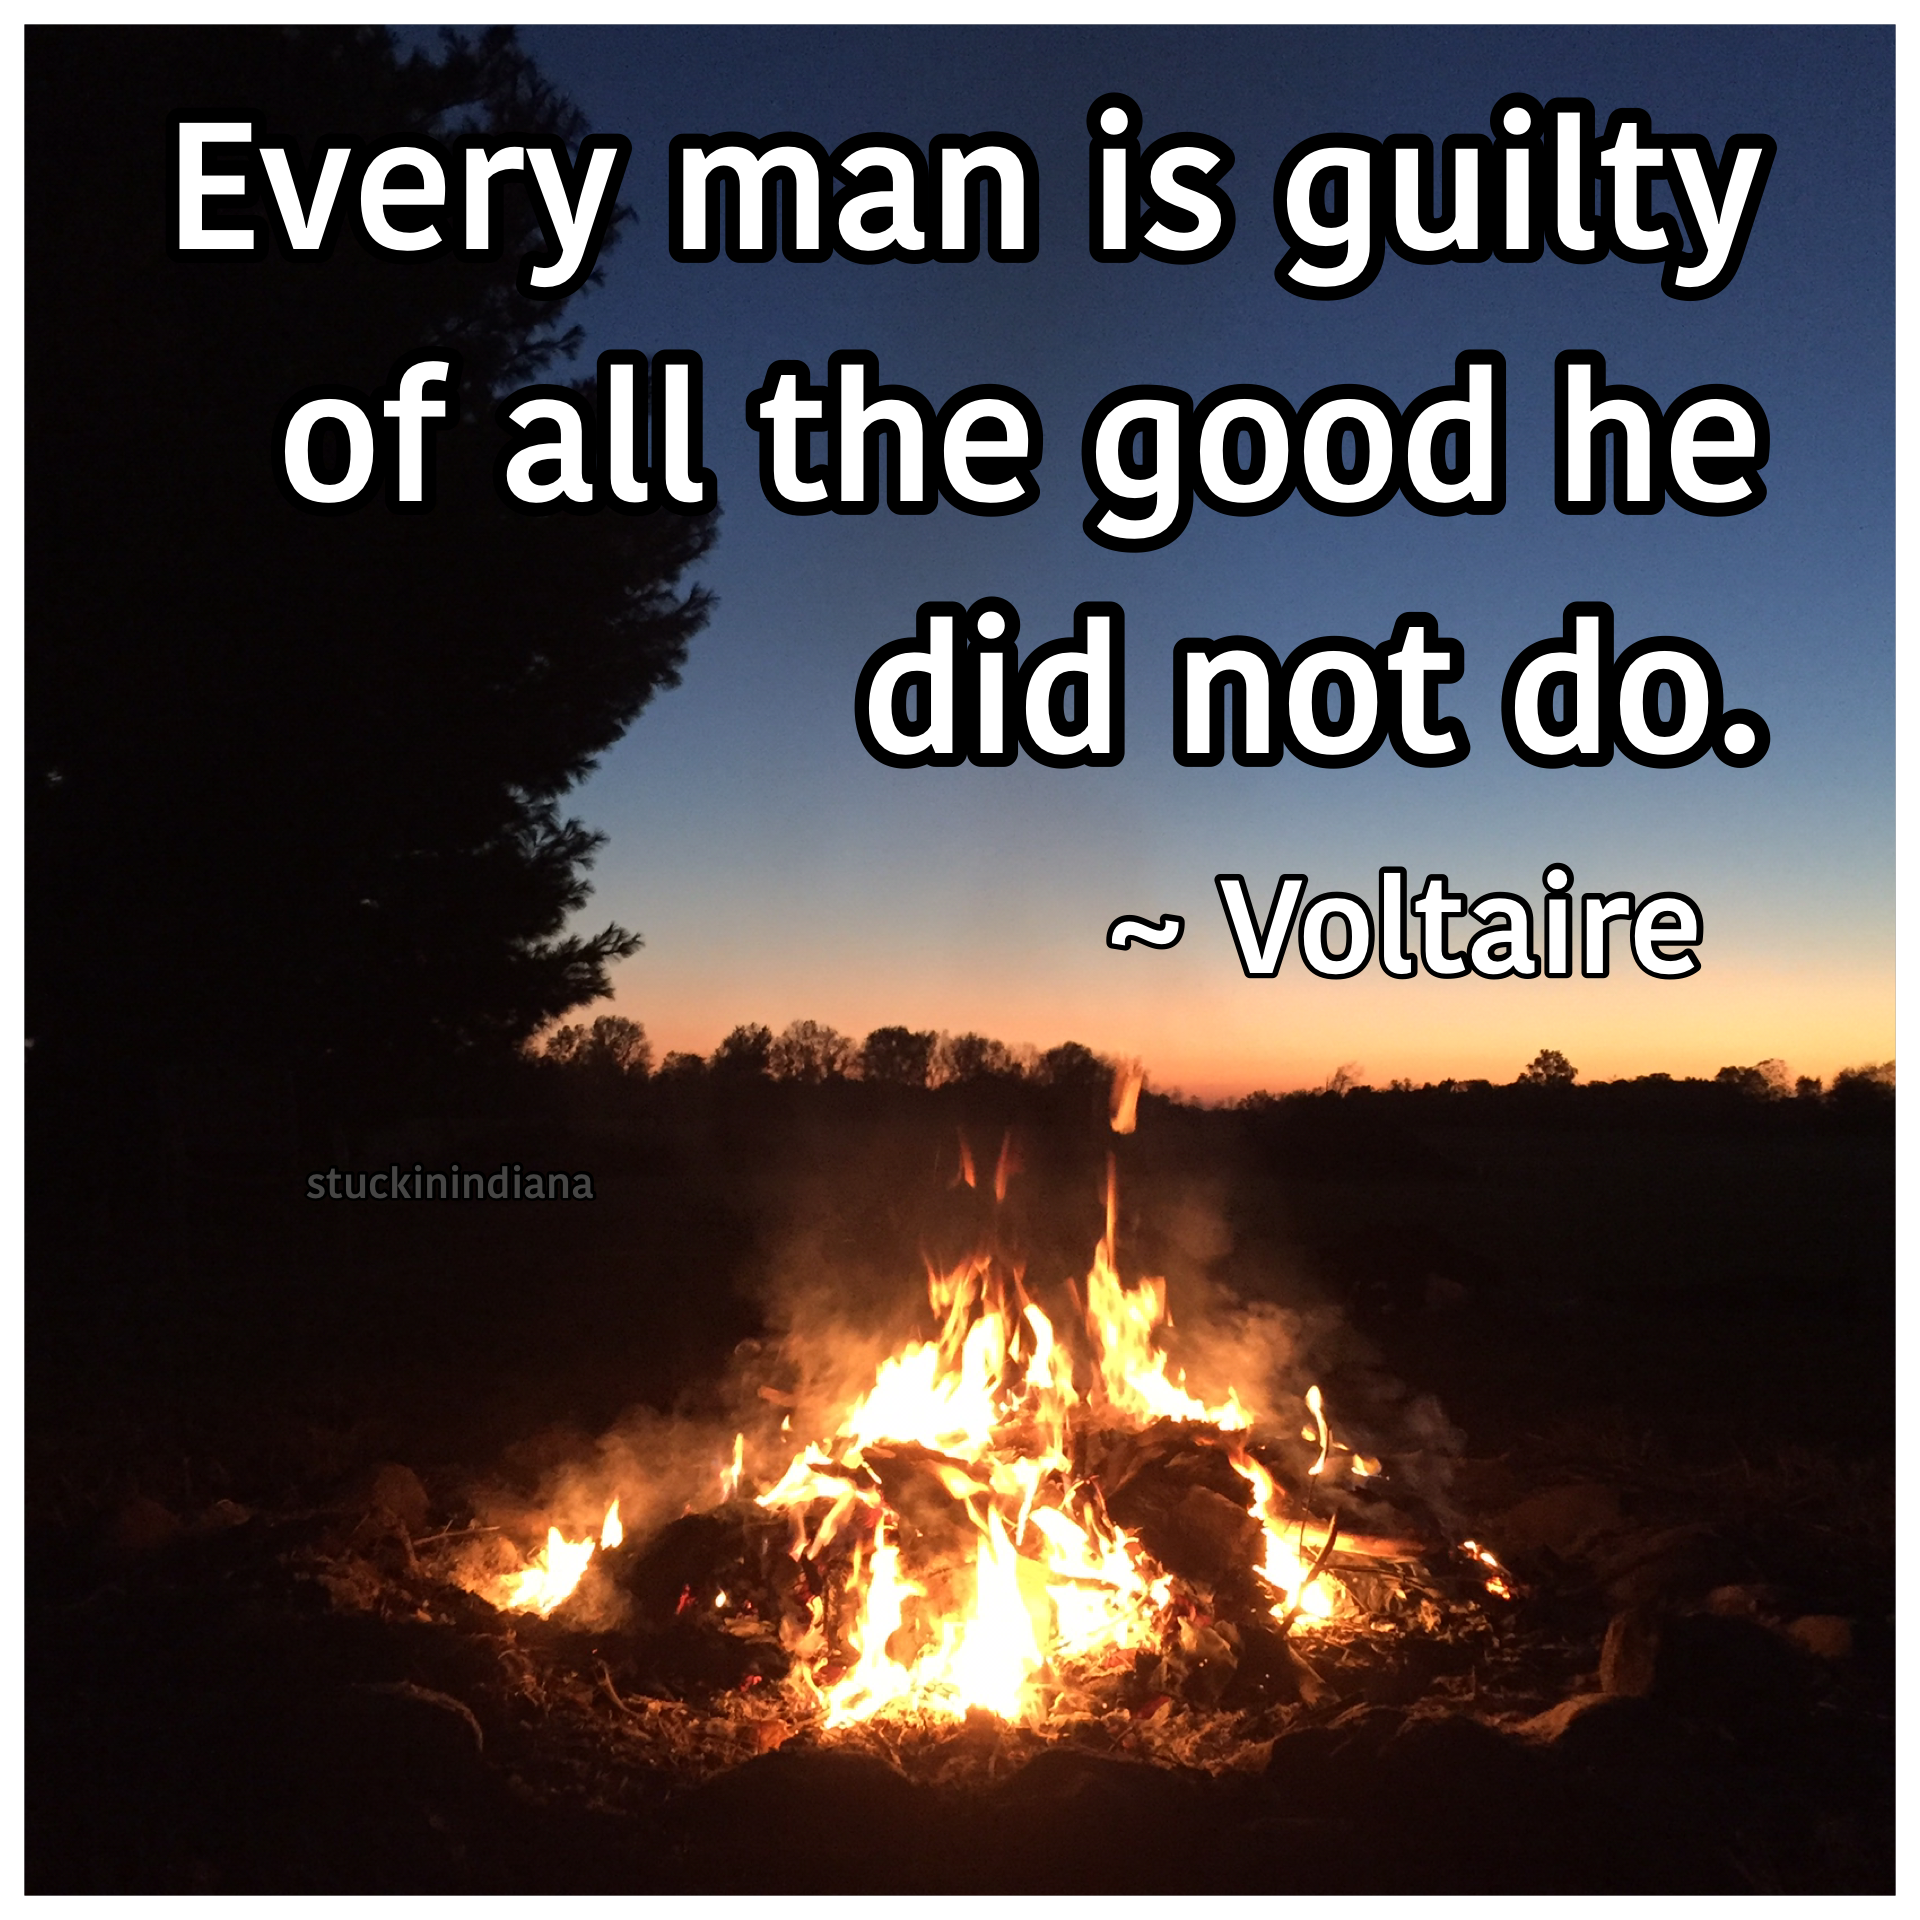 "Quotes Voltaire Every Man Is Guilty Of All The Good He Did Not Do.""  Voltaire"